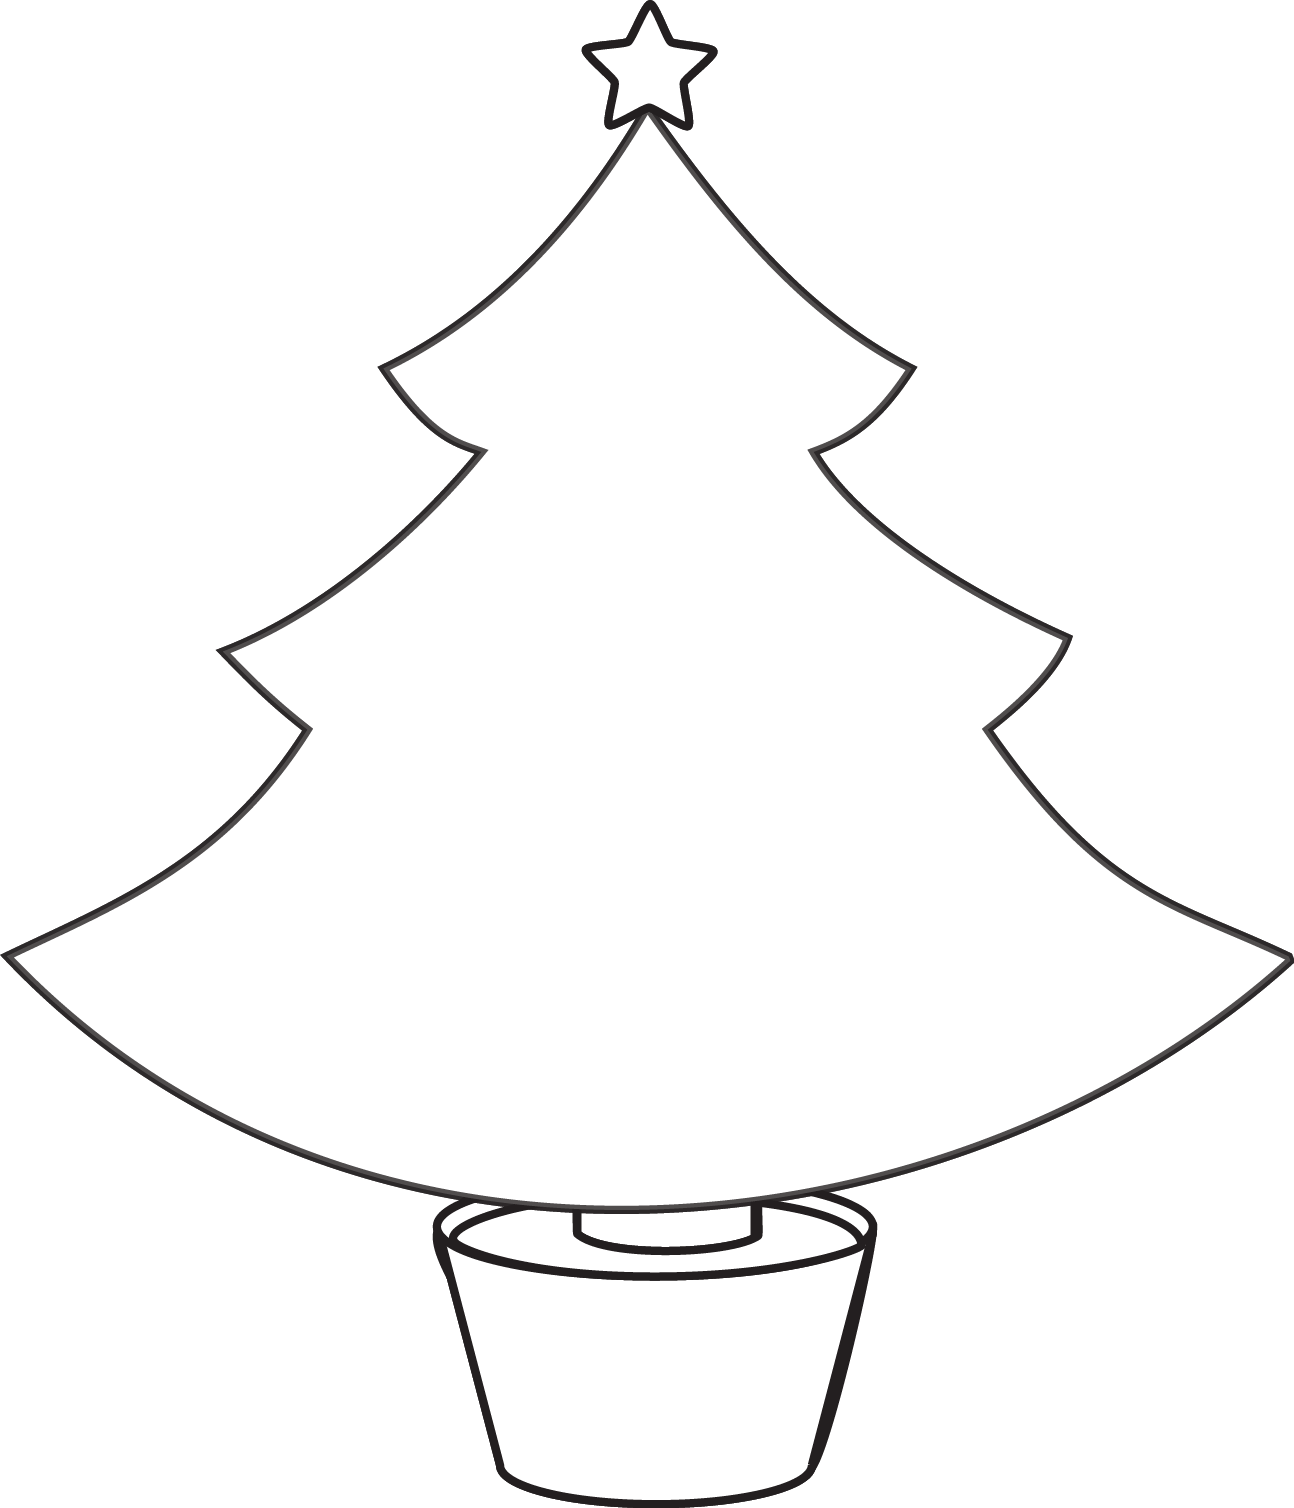 Simple Christmas Tree Outline Free Clipart Images